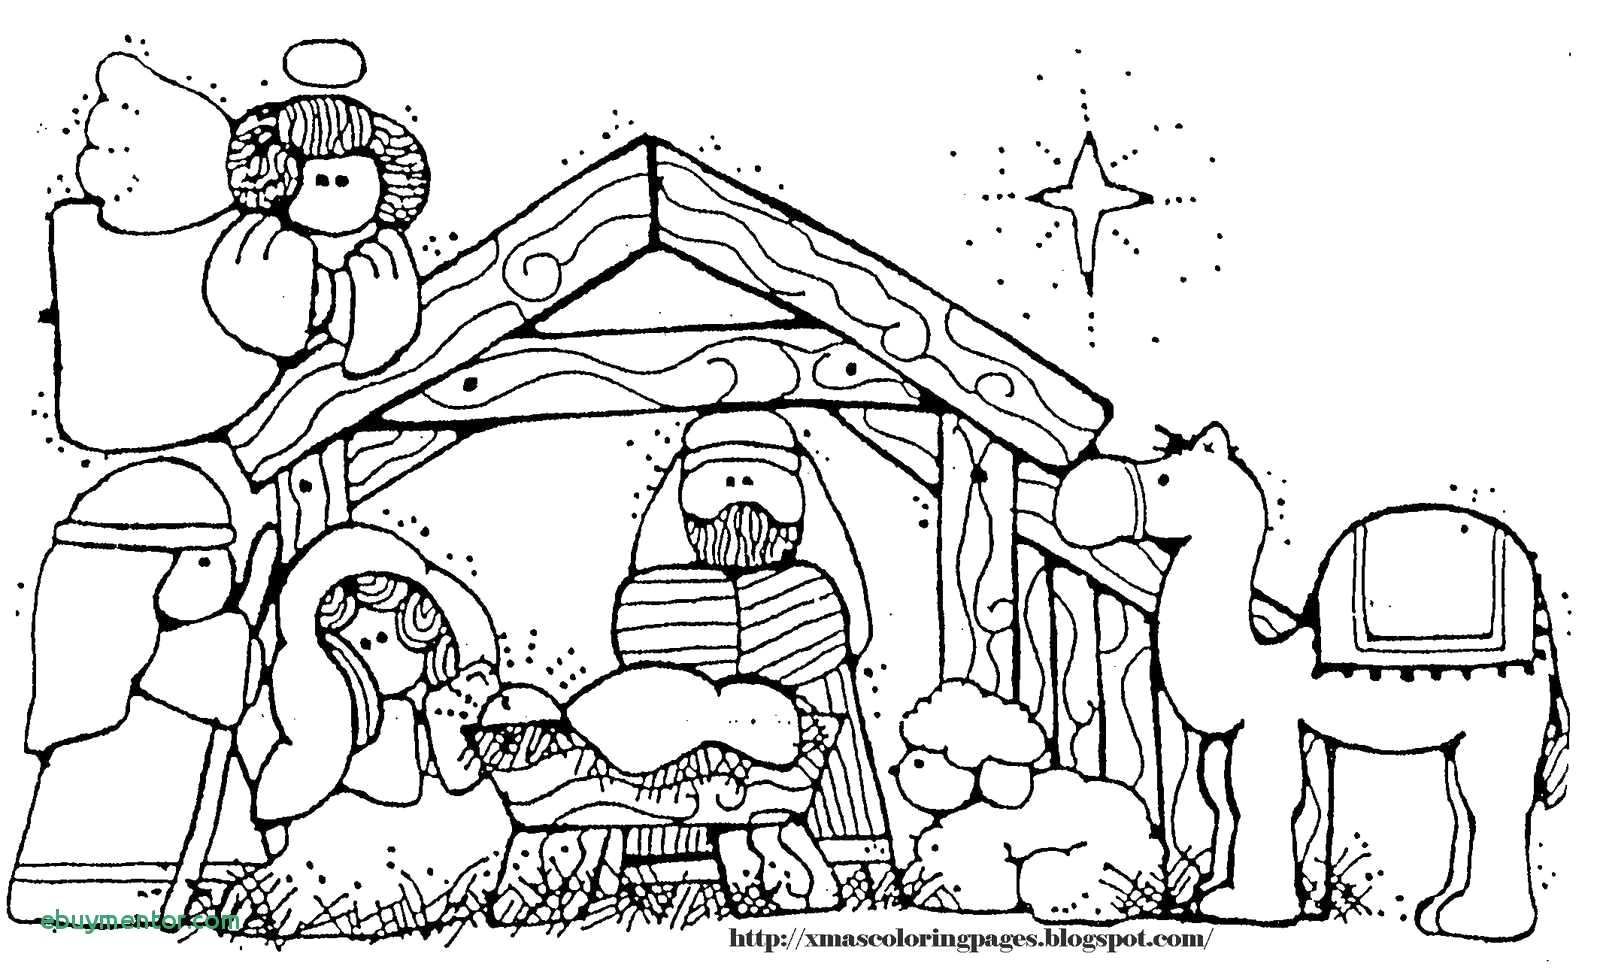 Christmas Coloring Jesus With Manger Pages Wikie Cloud Design Ideas